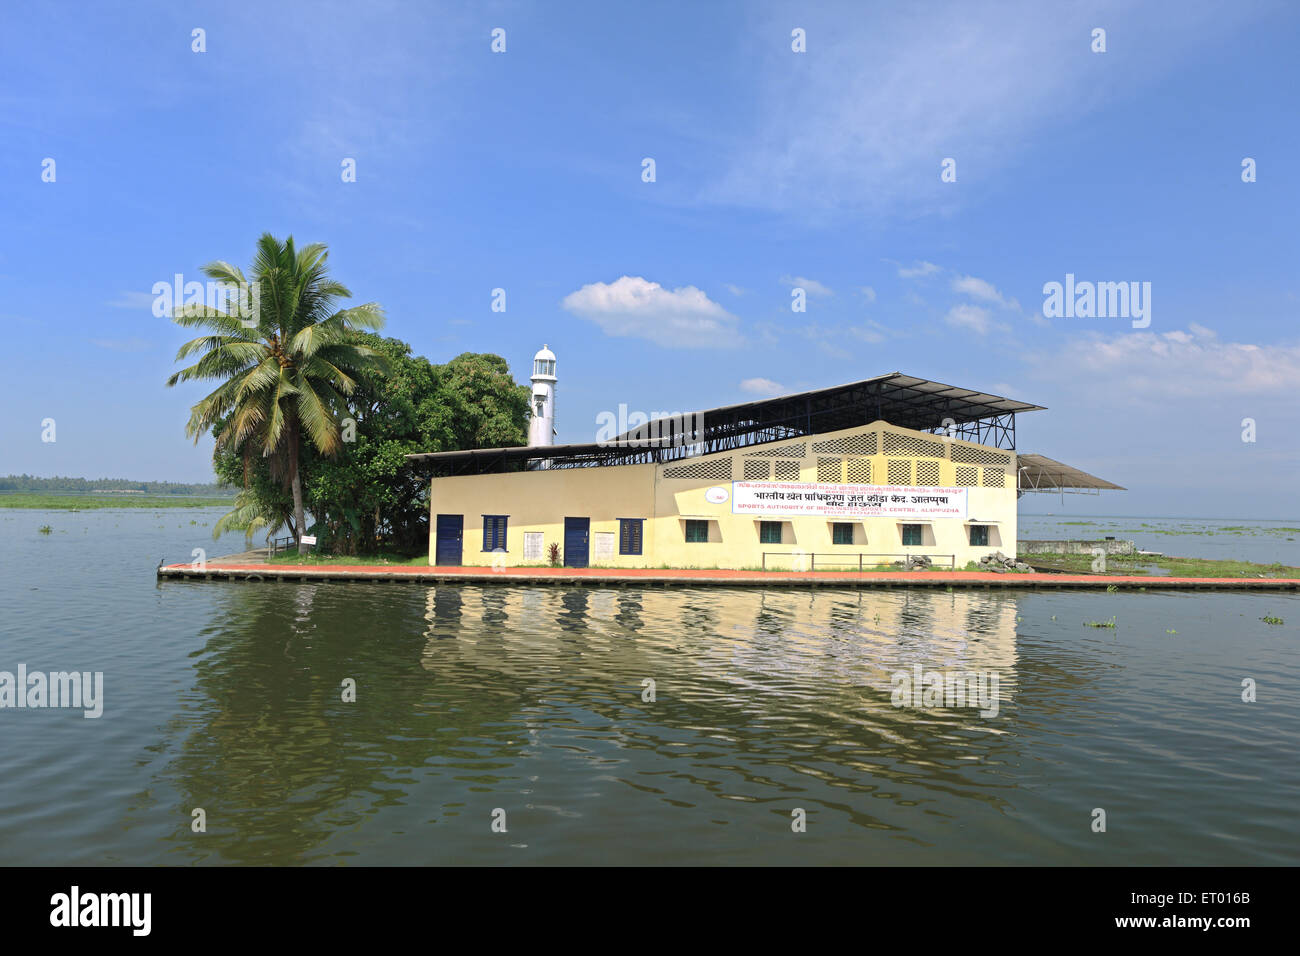 Sports authority of India watersports centre ; Alleppey Alappuzha ; Kerala ; India - Stock Image